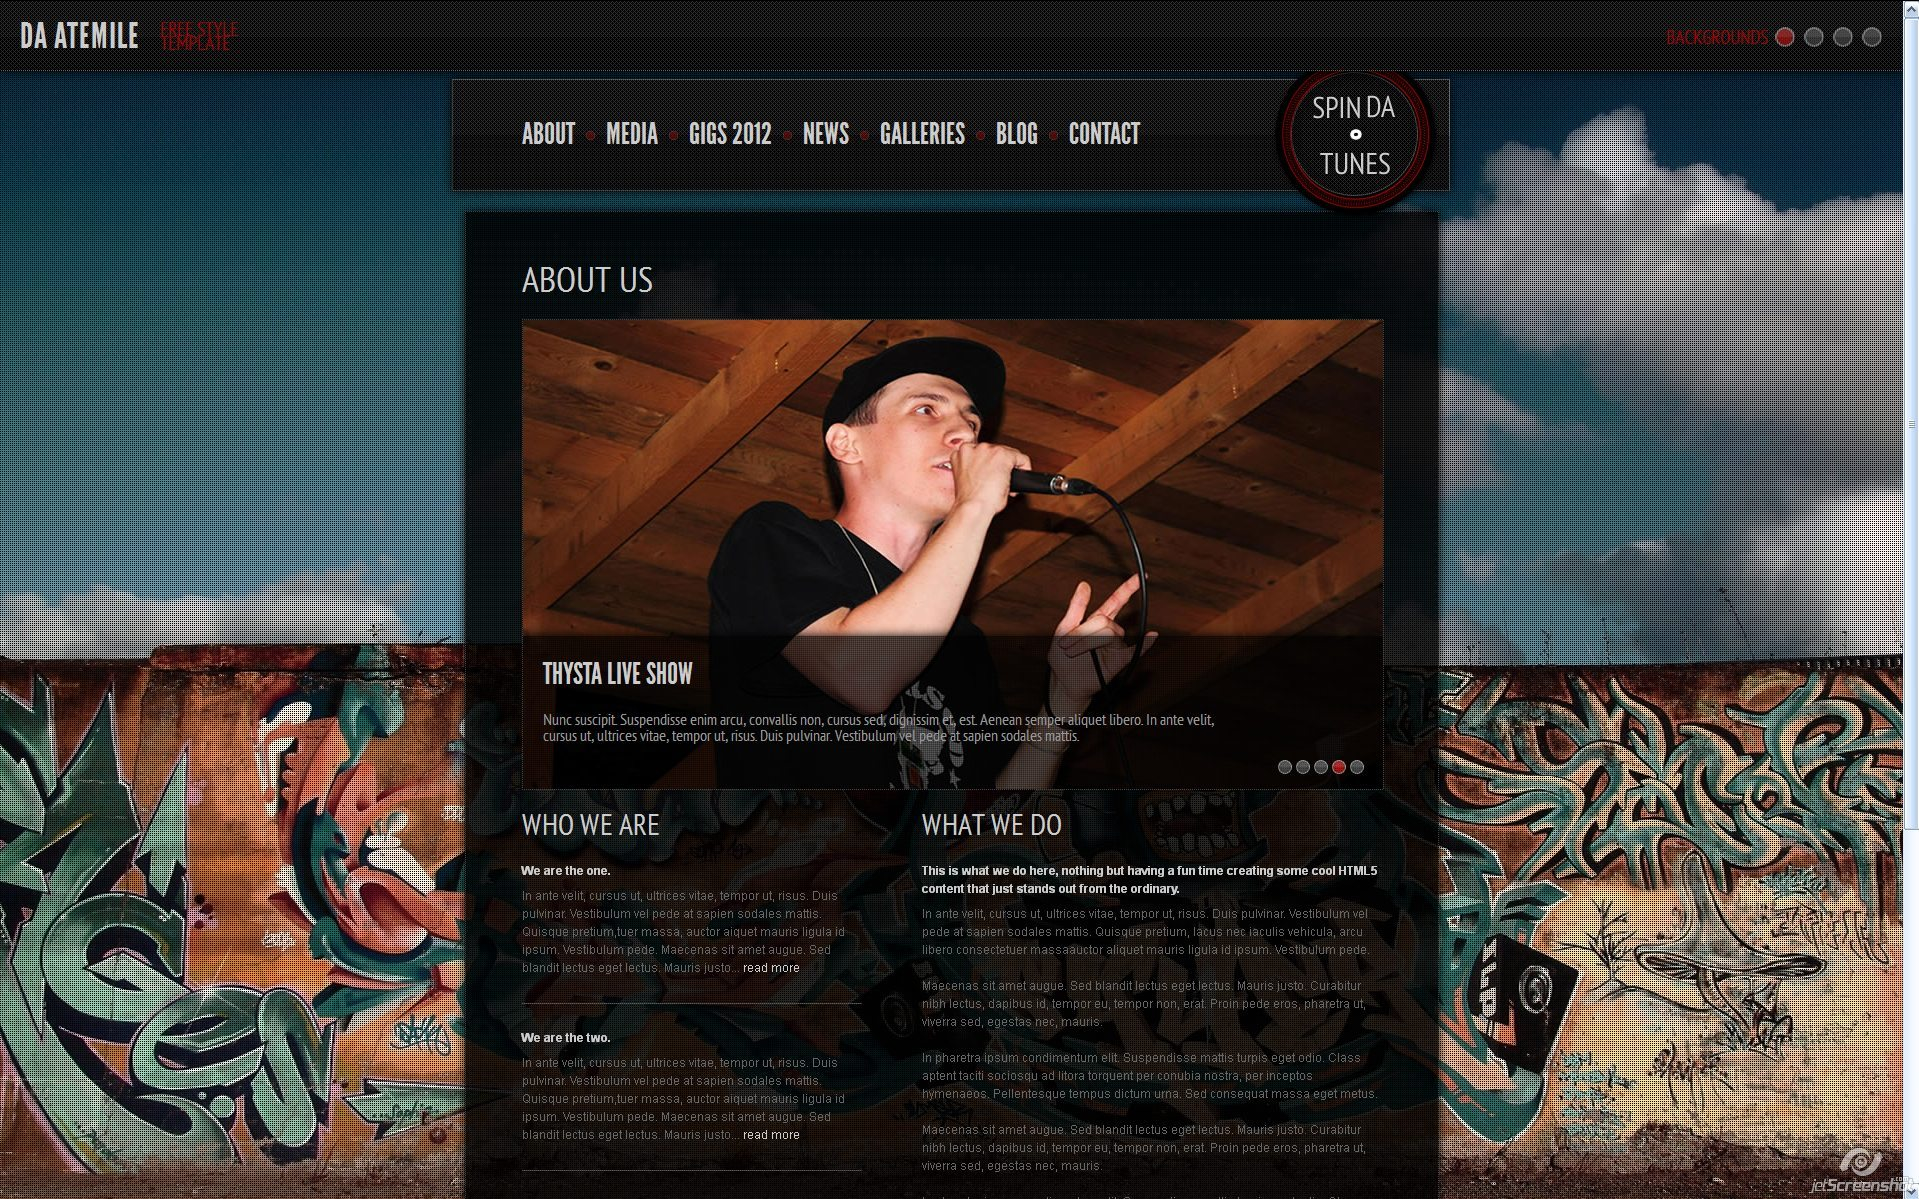 Da - AteMile - Free Style - Musician's Template - - About Page  - Awesome image slider with caption and custom nav buttons.Lots of cool CSS# animations.